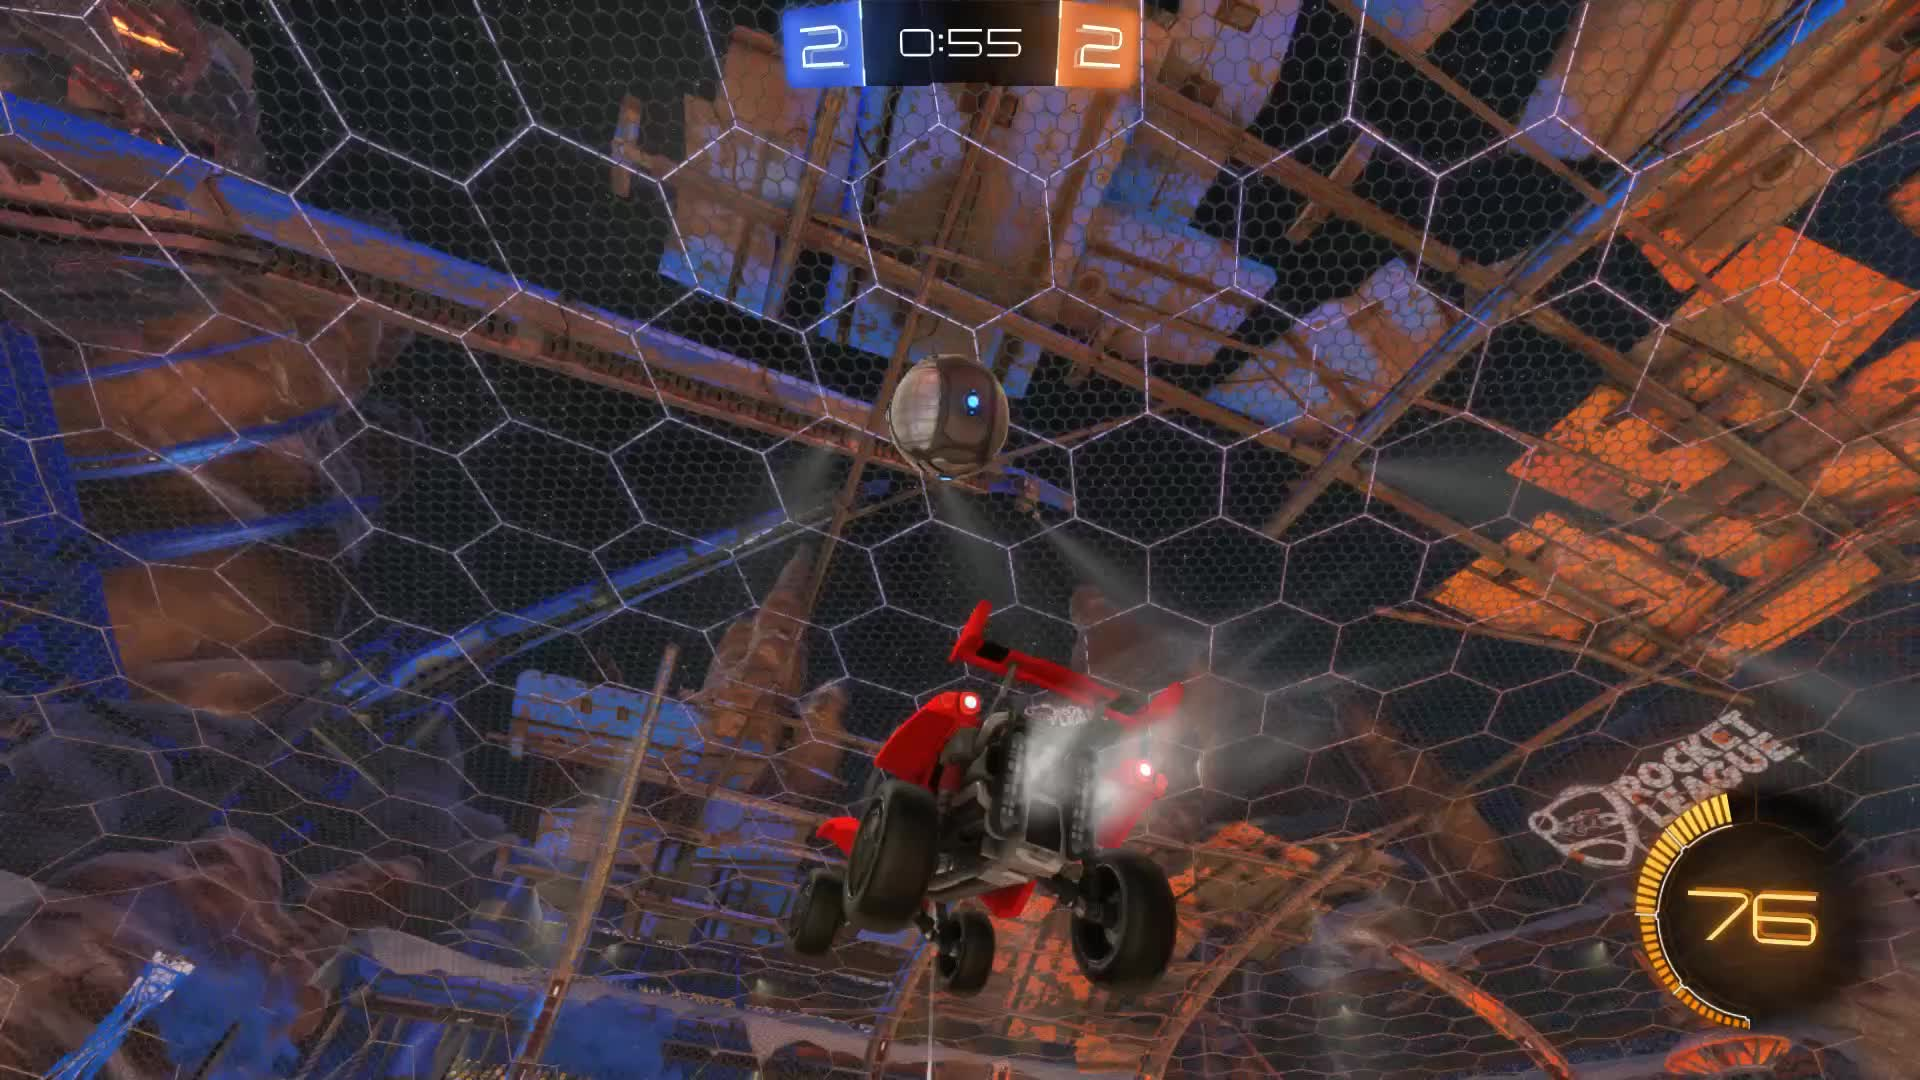 Gif Your Game, GifYourGame, Goal, Rocket League, RocketLeague, very noob, Goal 5: very noob GIFs